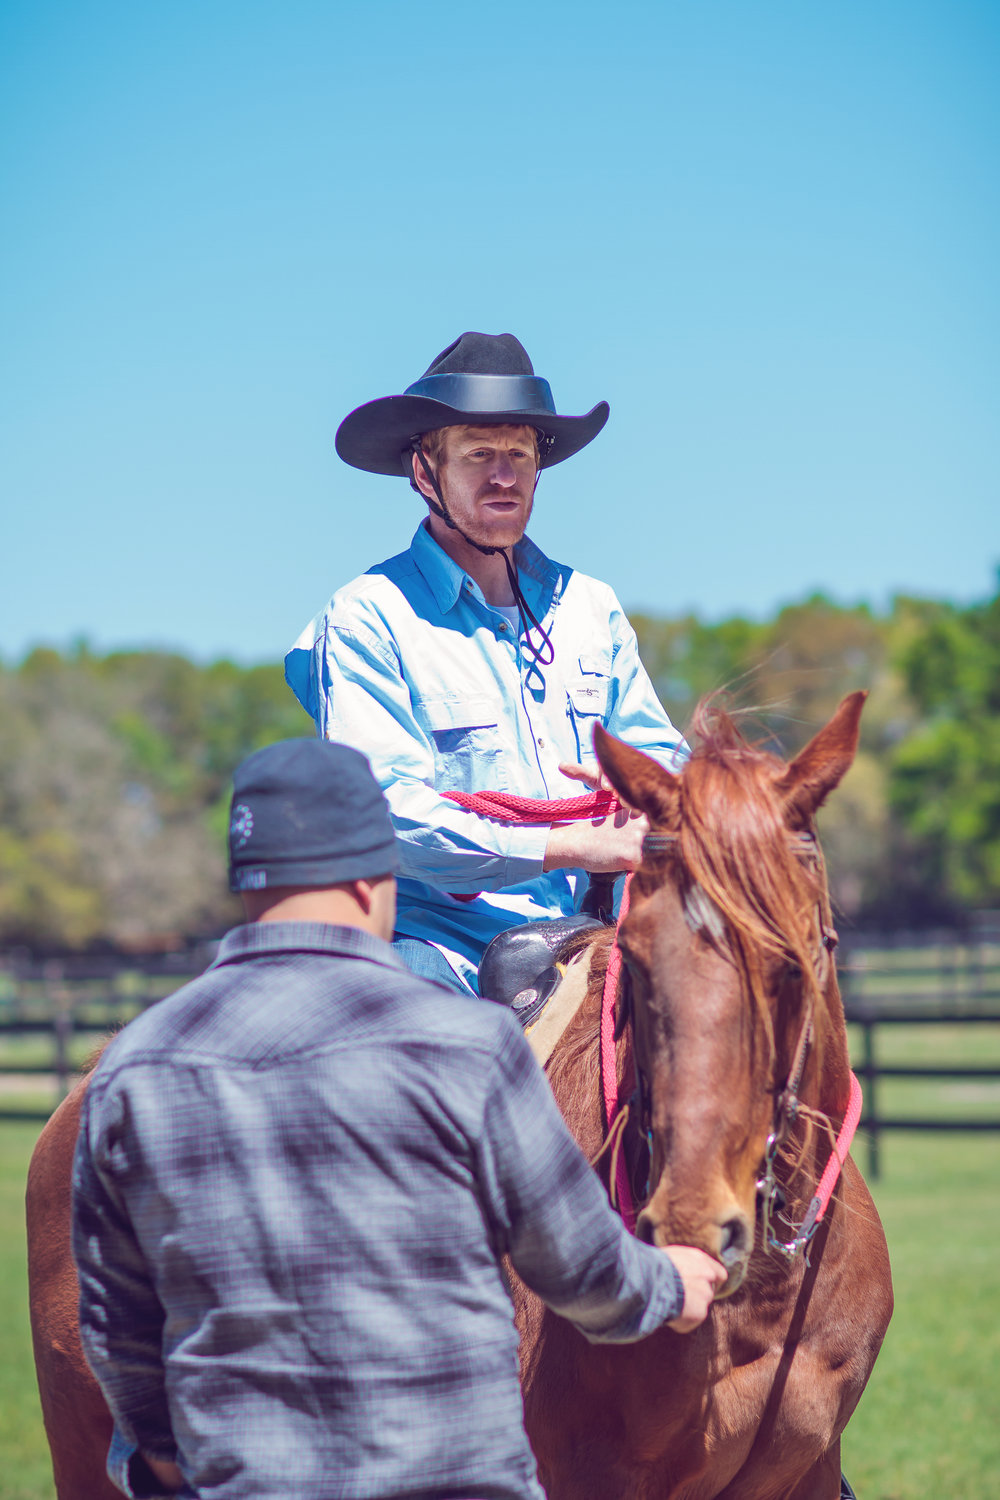 Veteran Bryan and Executive Director Travis talking during Equine Assisted Learning.